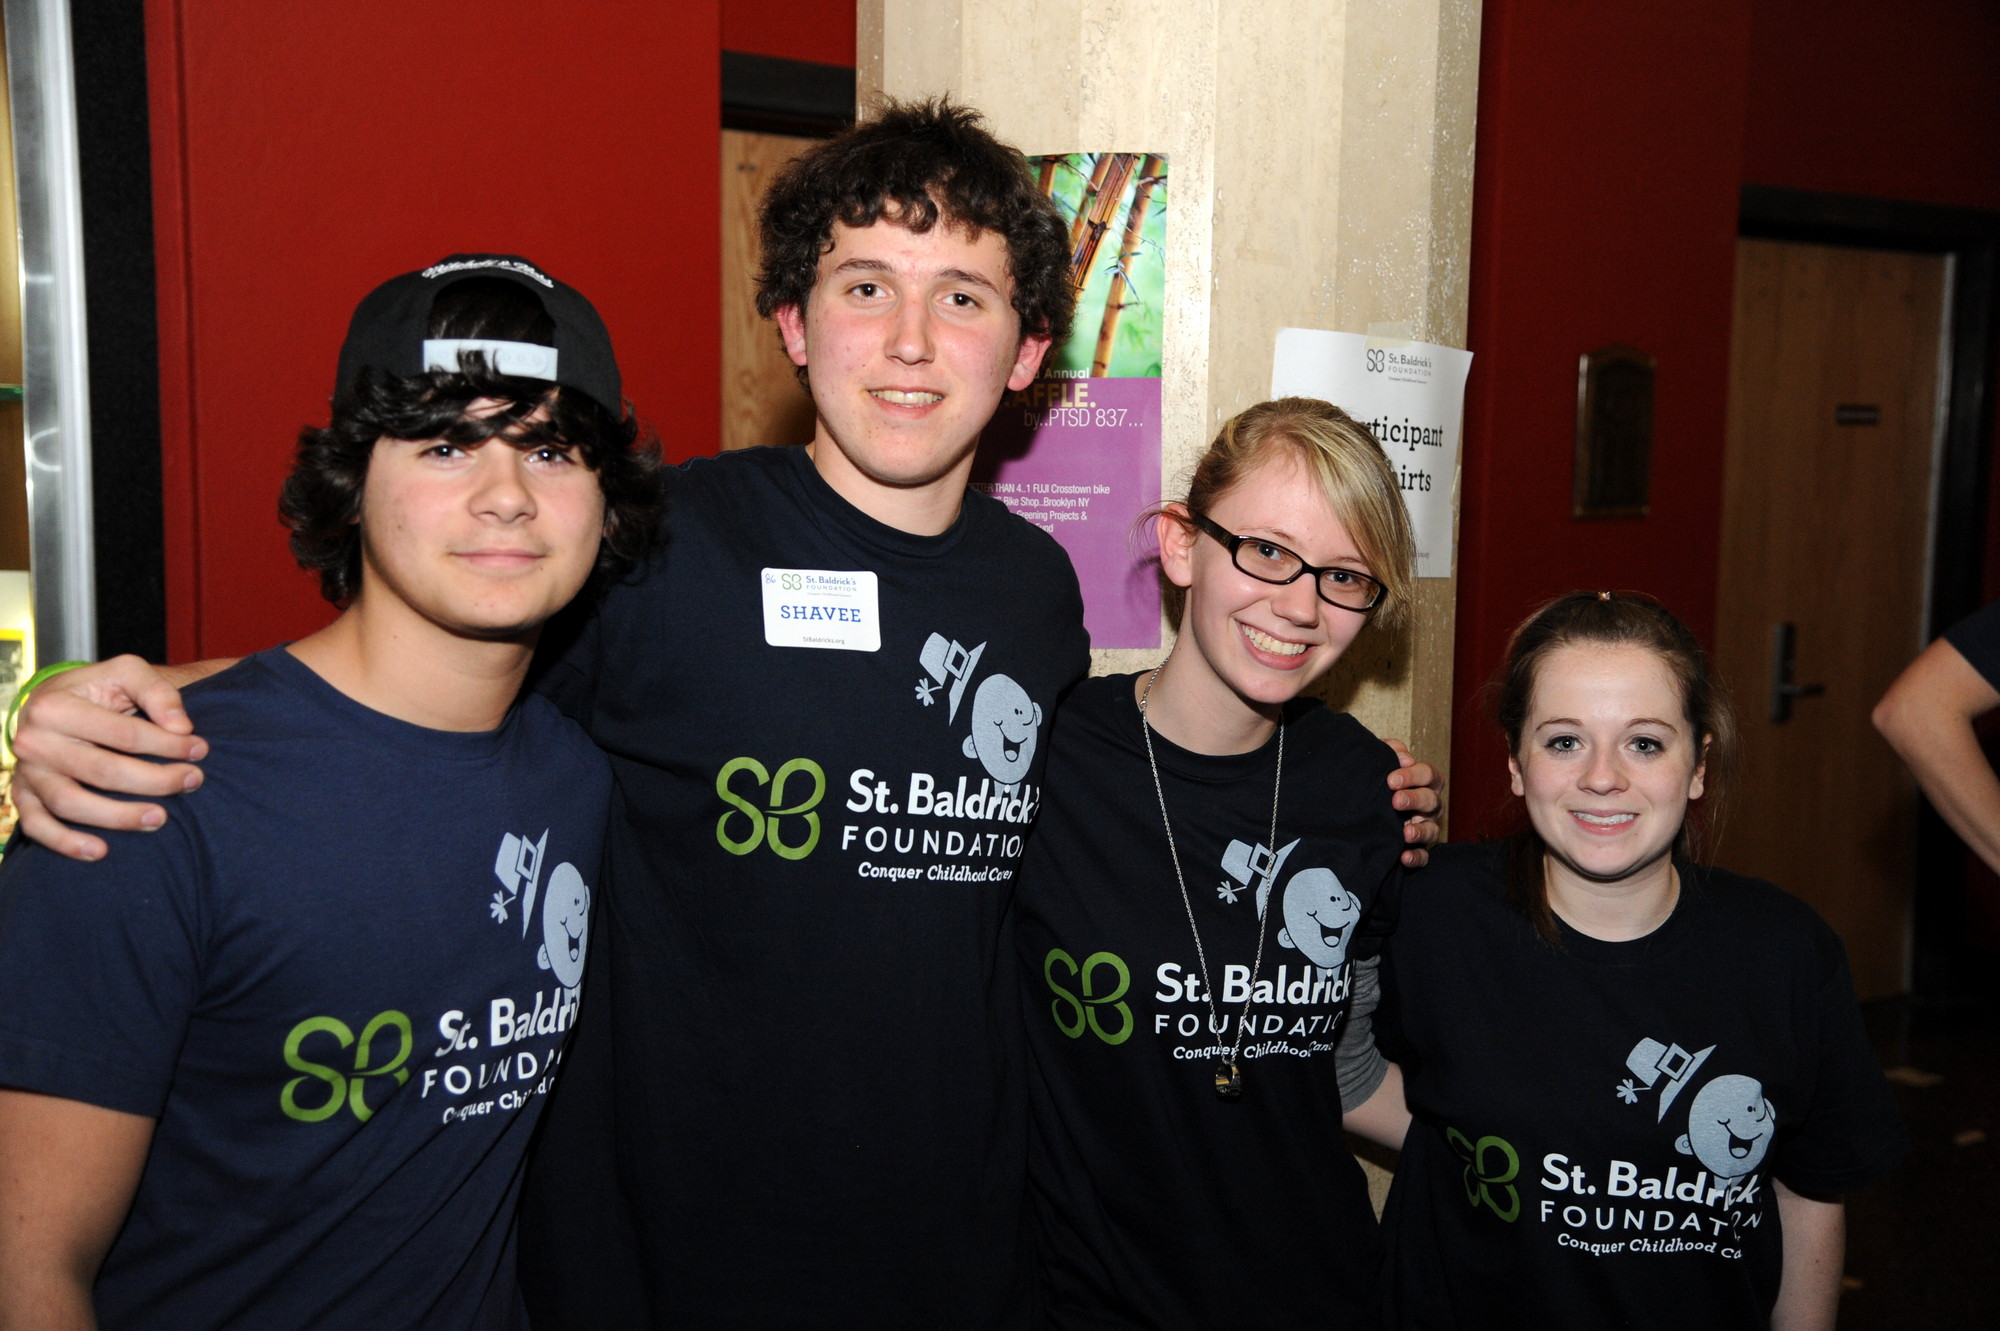 Nick Turco, James Murphy, Samantha Moskowitz and Nicole Salamone sold shirts to raise more money at the event.